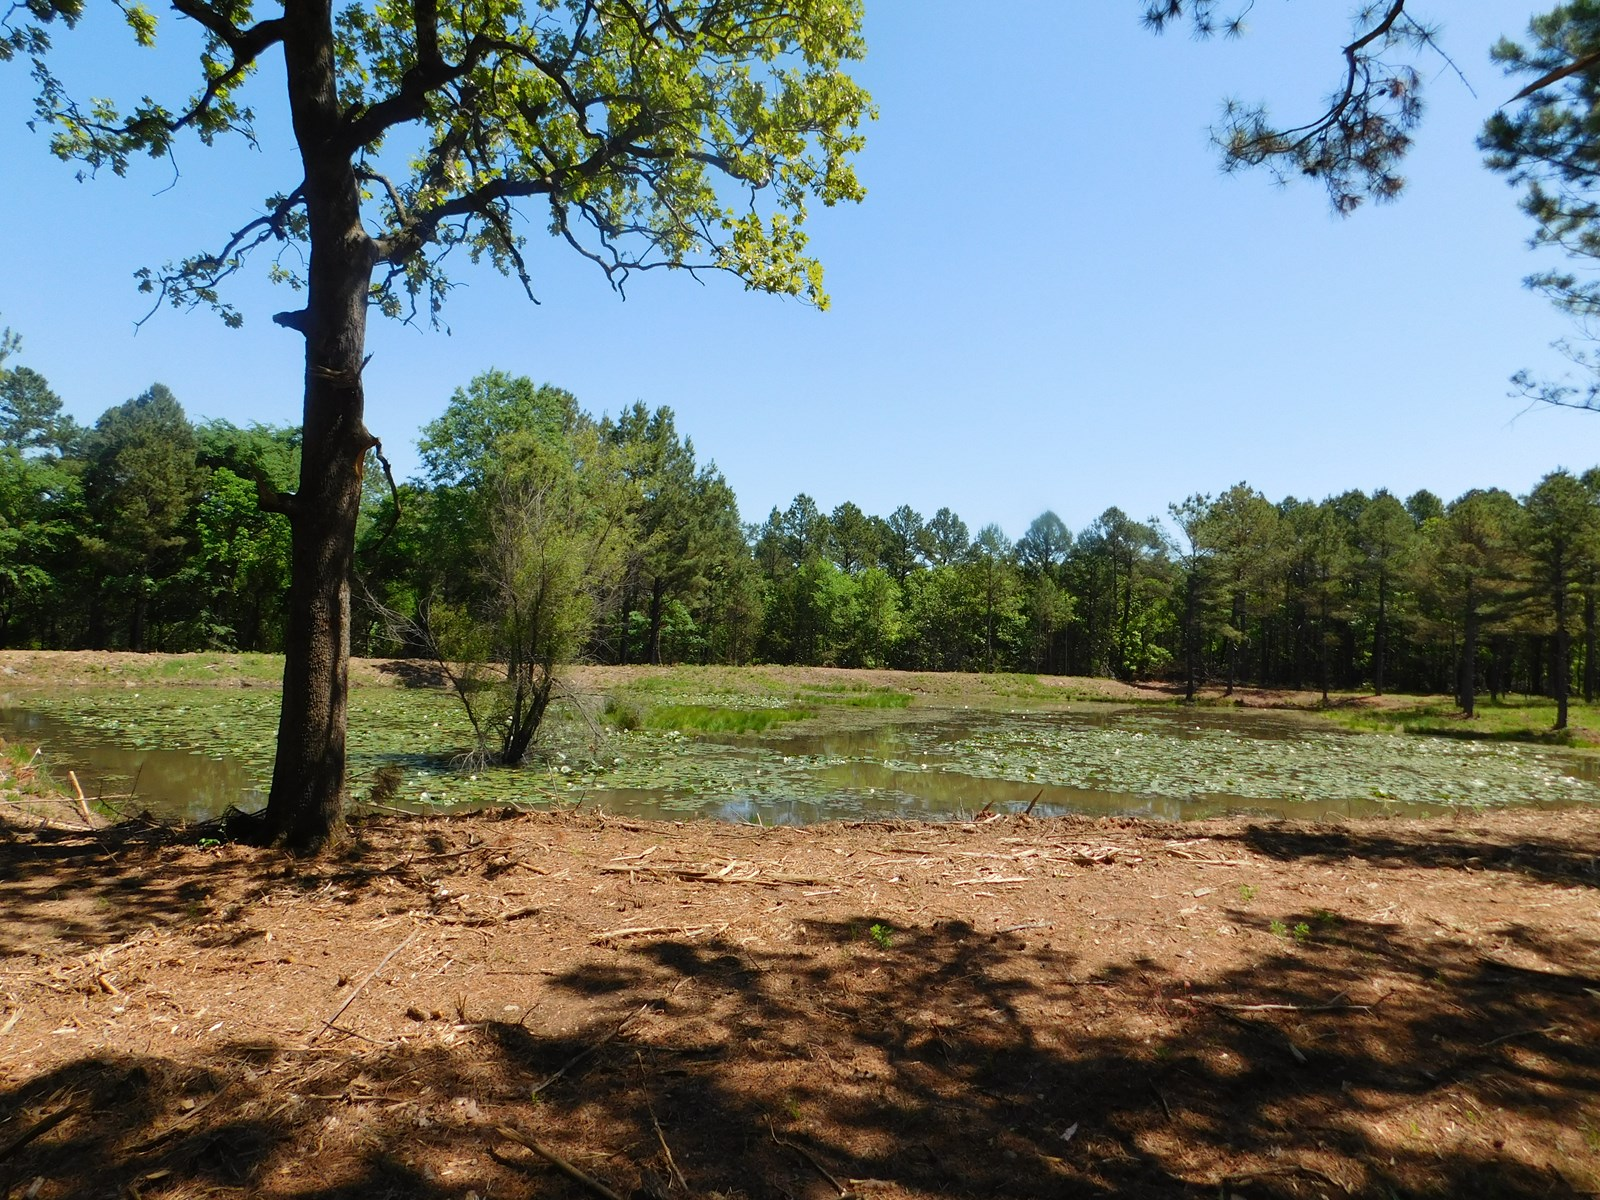 BUILDING SITE, POND, COUNTRY LIVING